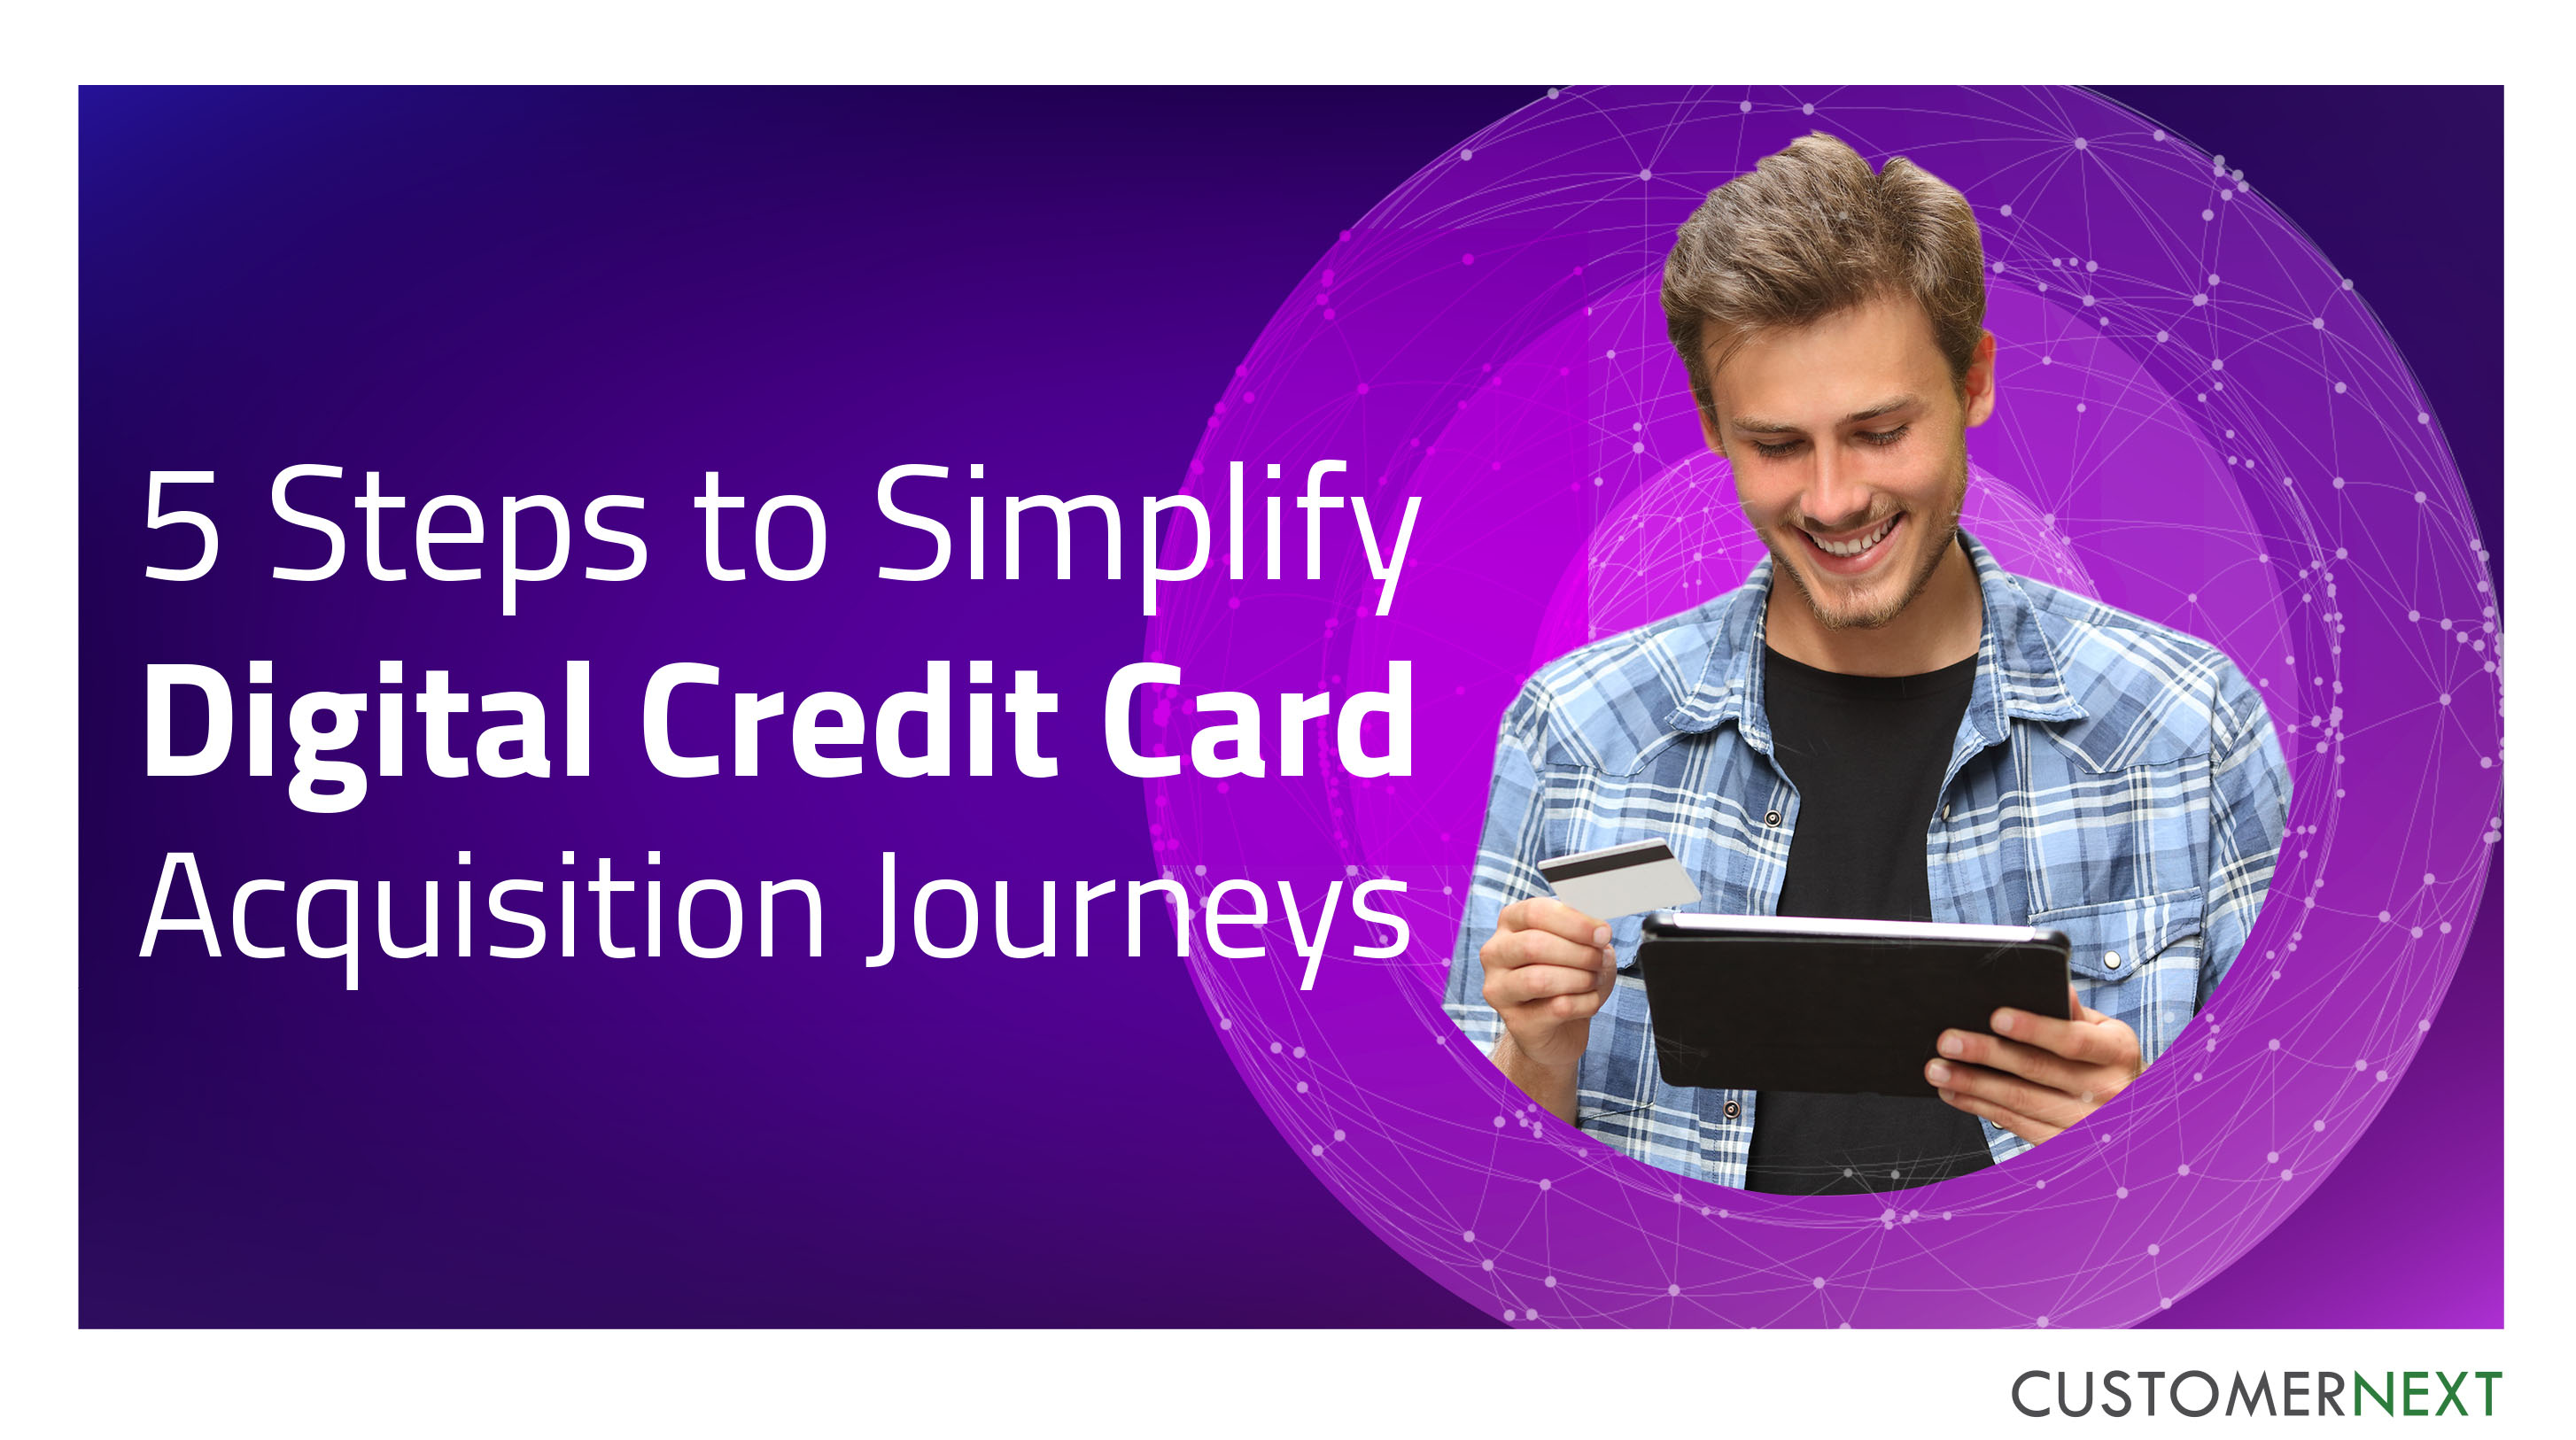 Digital customer journeys, Digital banking journeys, Digital credit card journeys